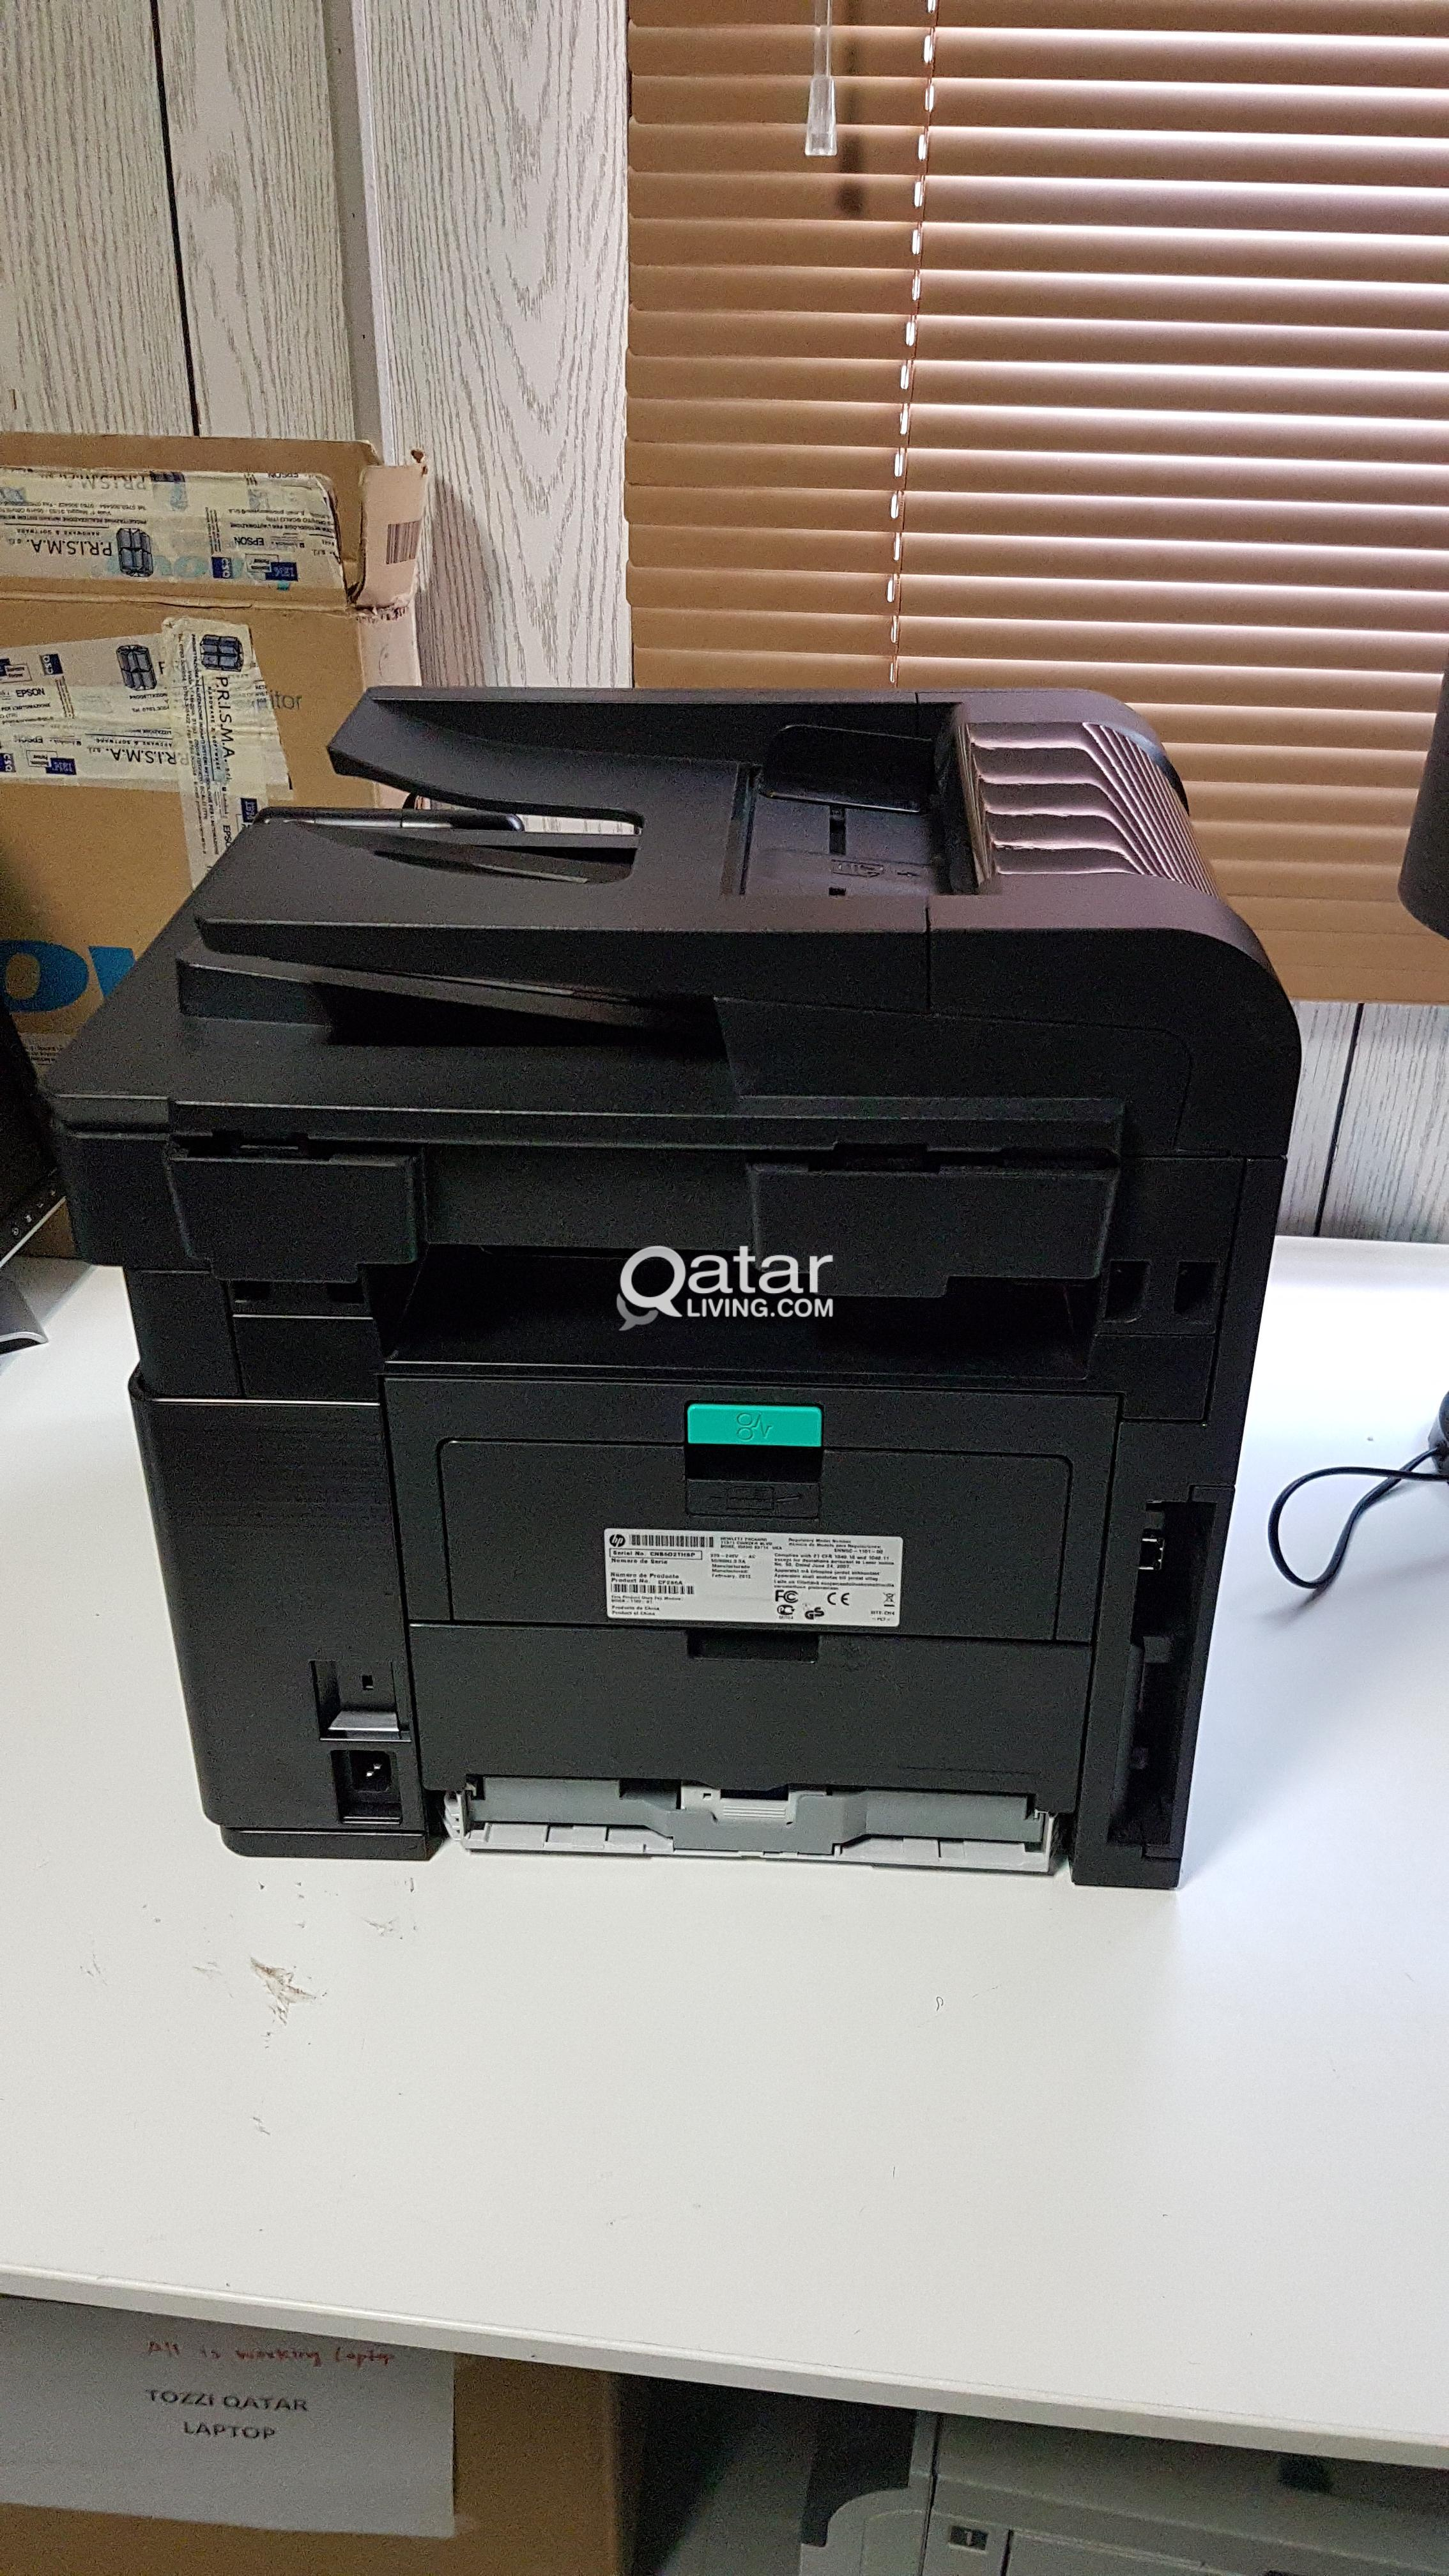 VAROUS TYPE OF NEW & USED PRINTERS FOR SALE   Qatar Living